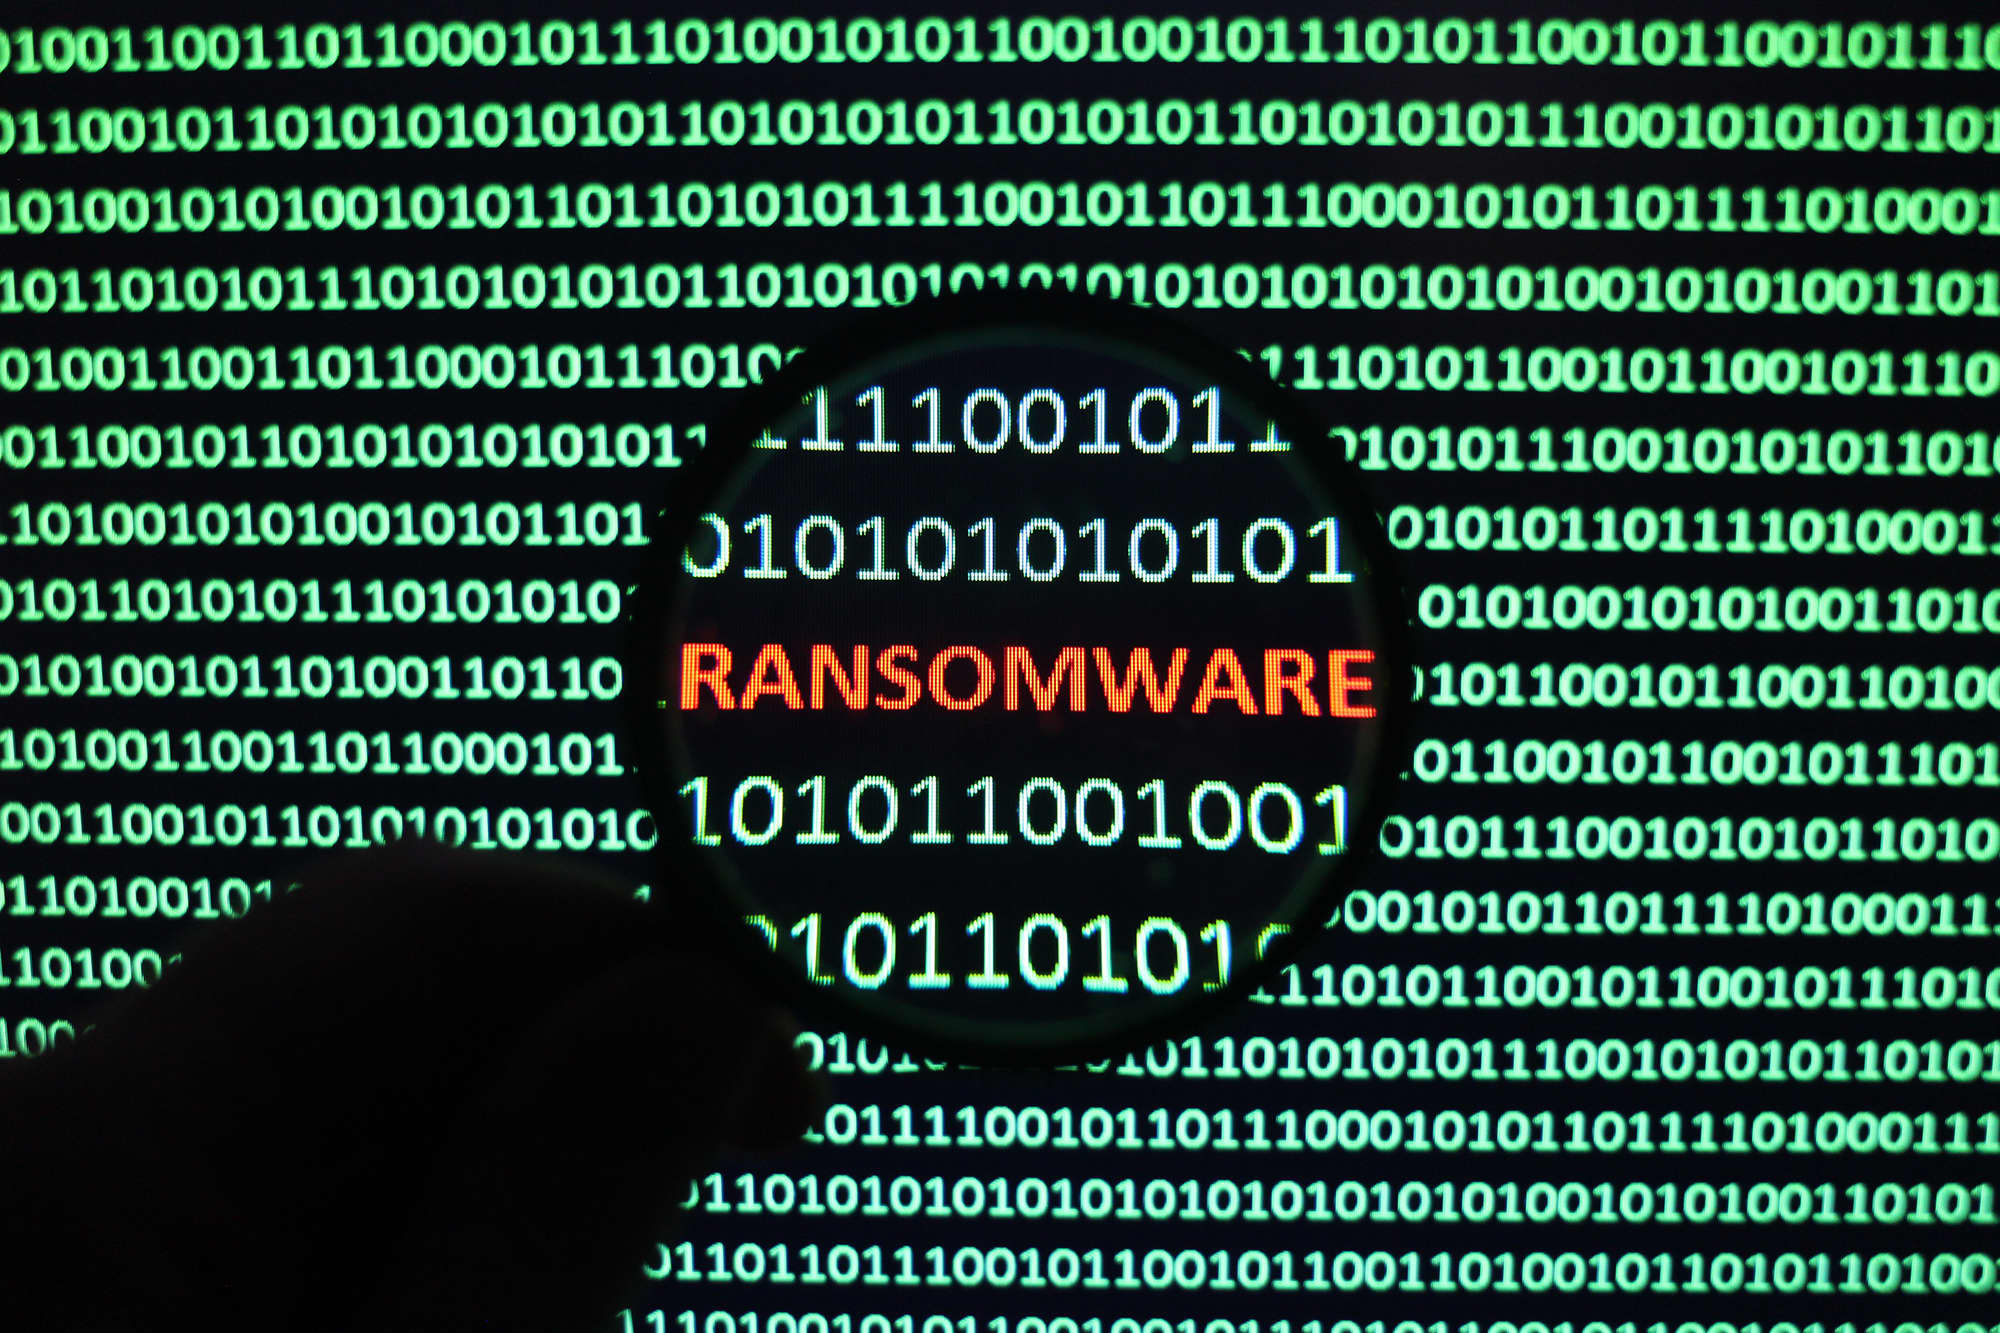 REvil hacker group attacks Sol Oriens with ransomware